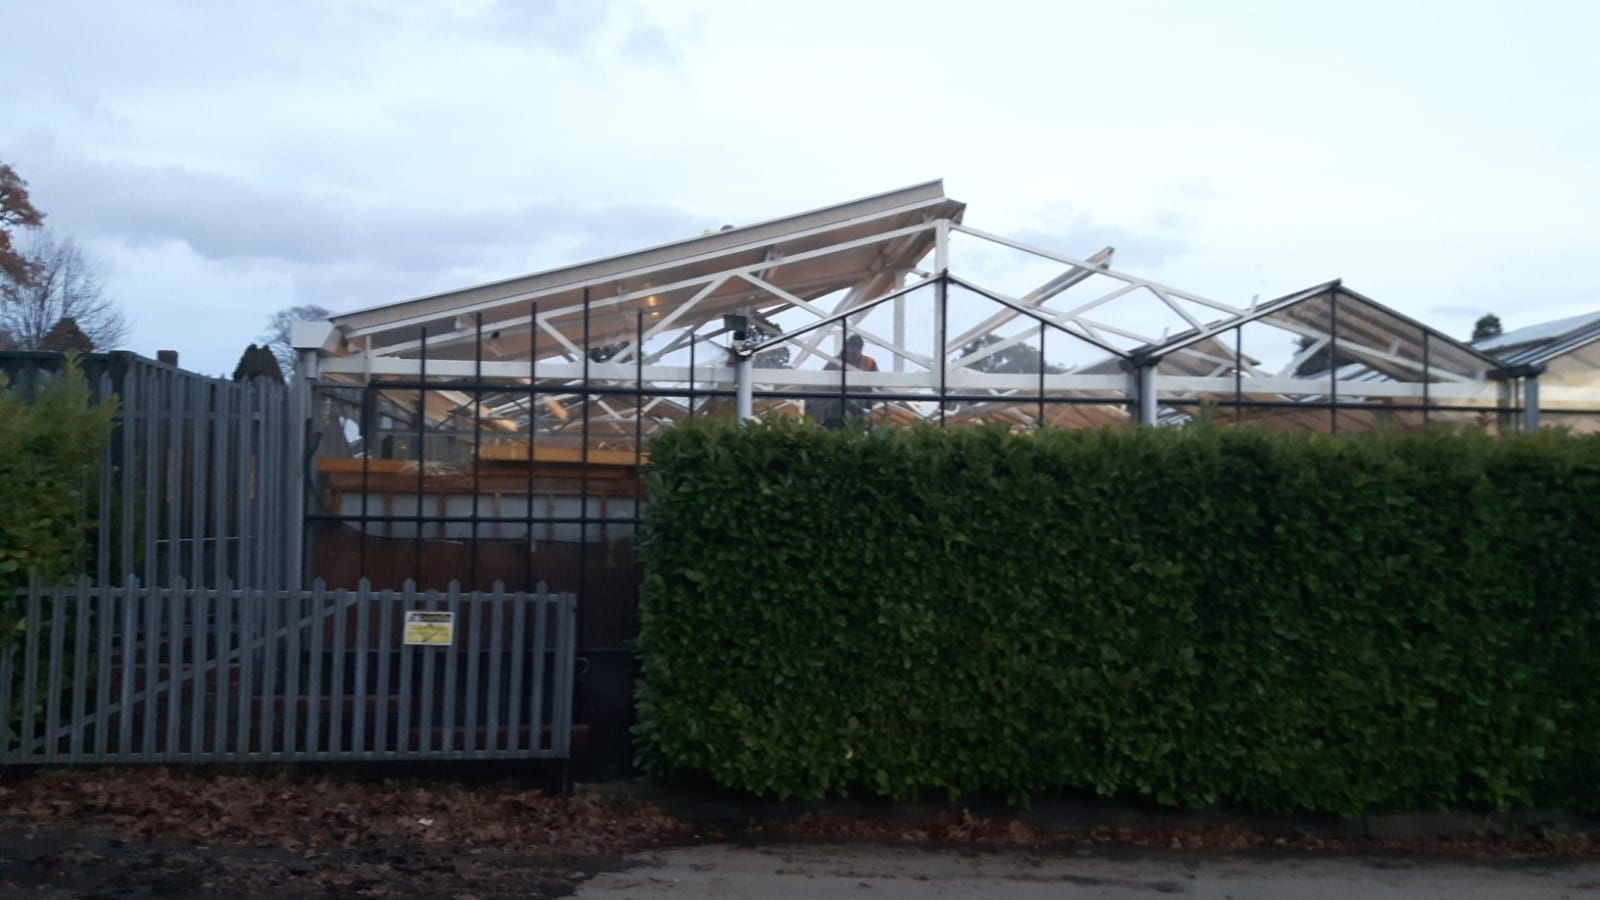 Stansted Park Garden Centre intended for Stansted House Garden Centre Cafe